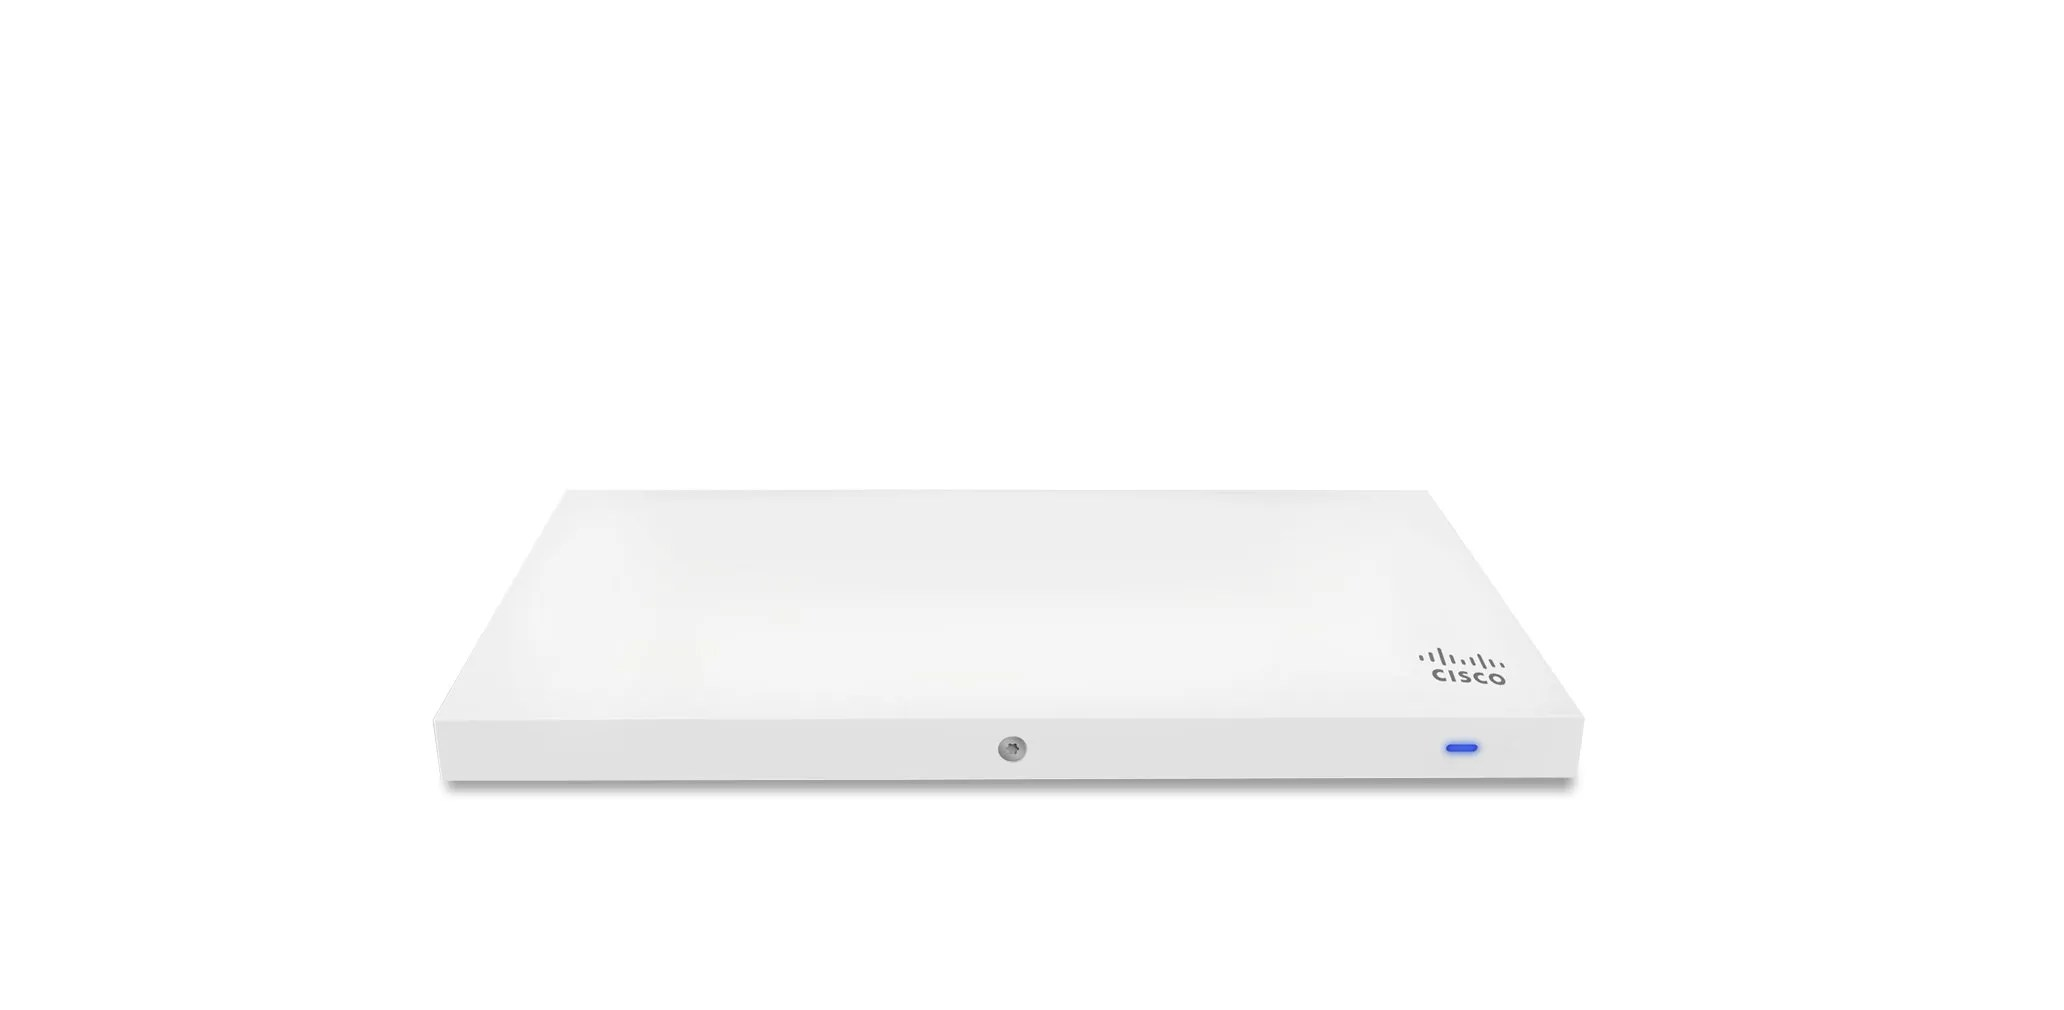 Cisco Meraki MR33 access point